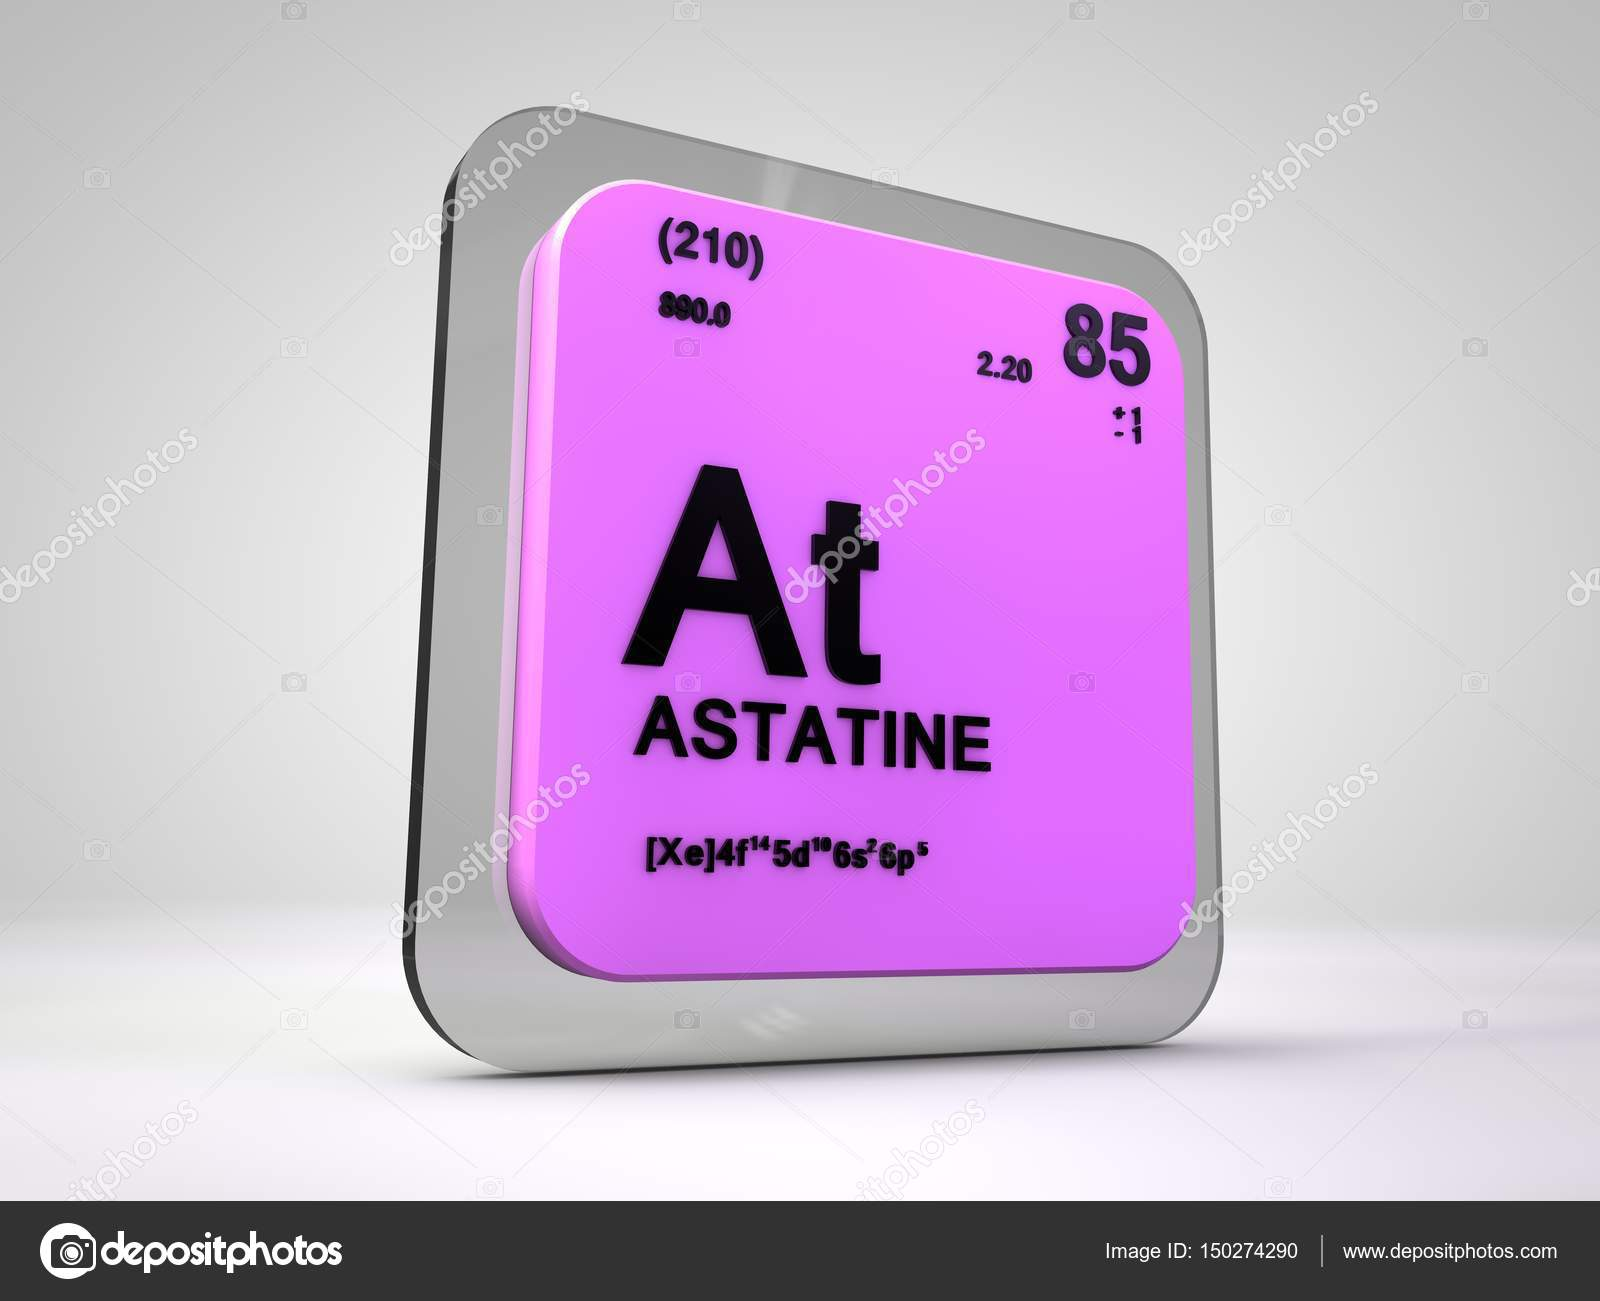 Astatine at chemical element periodic table 3d render stock astatine at chemical element periodic table 3d render photo by viking75 urtaz Gallery